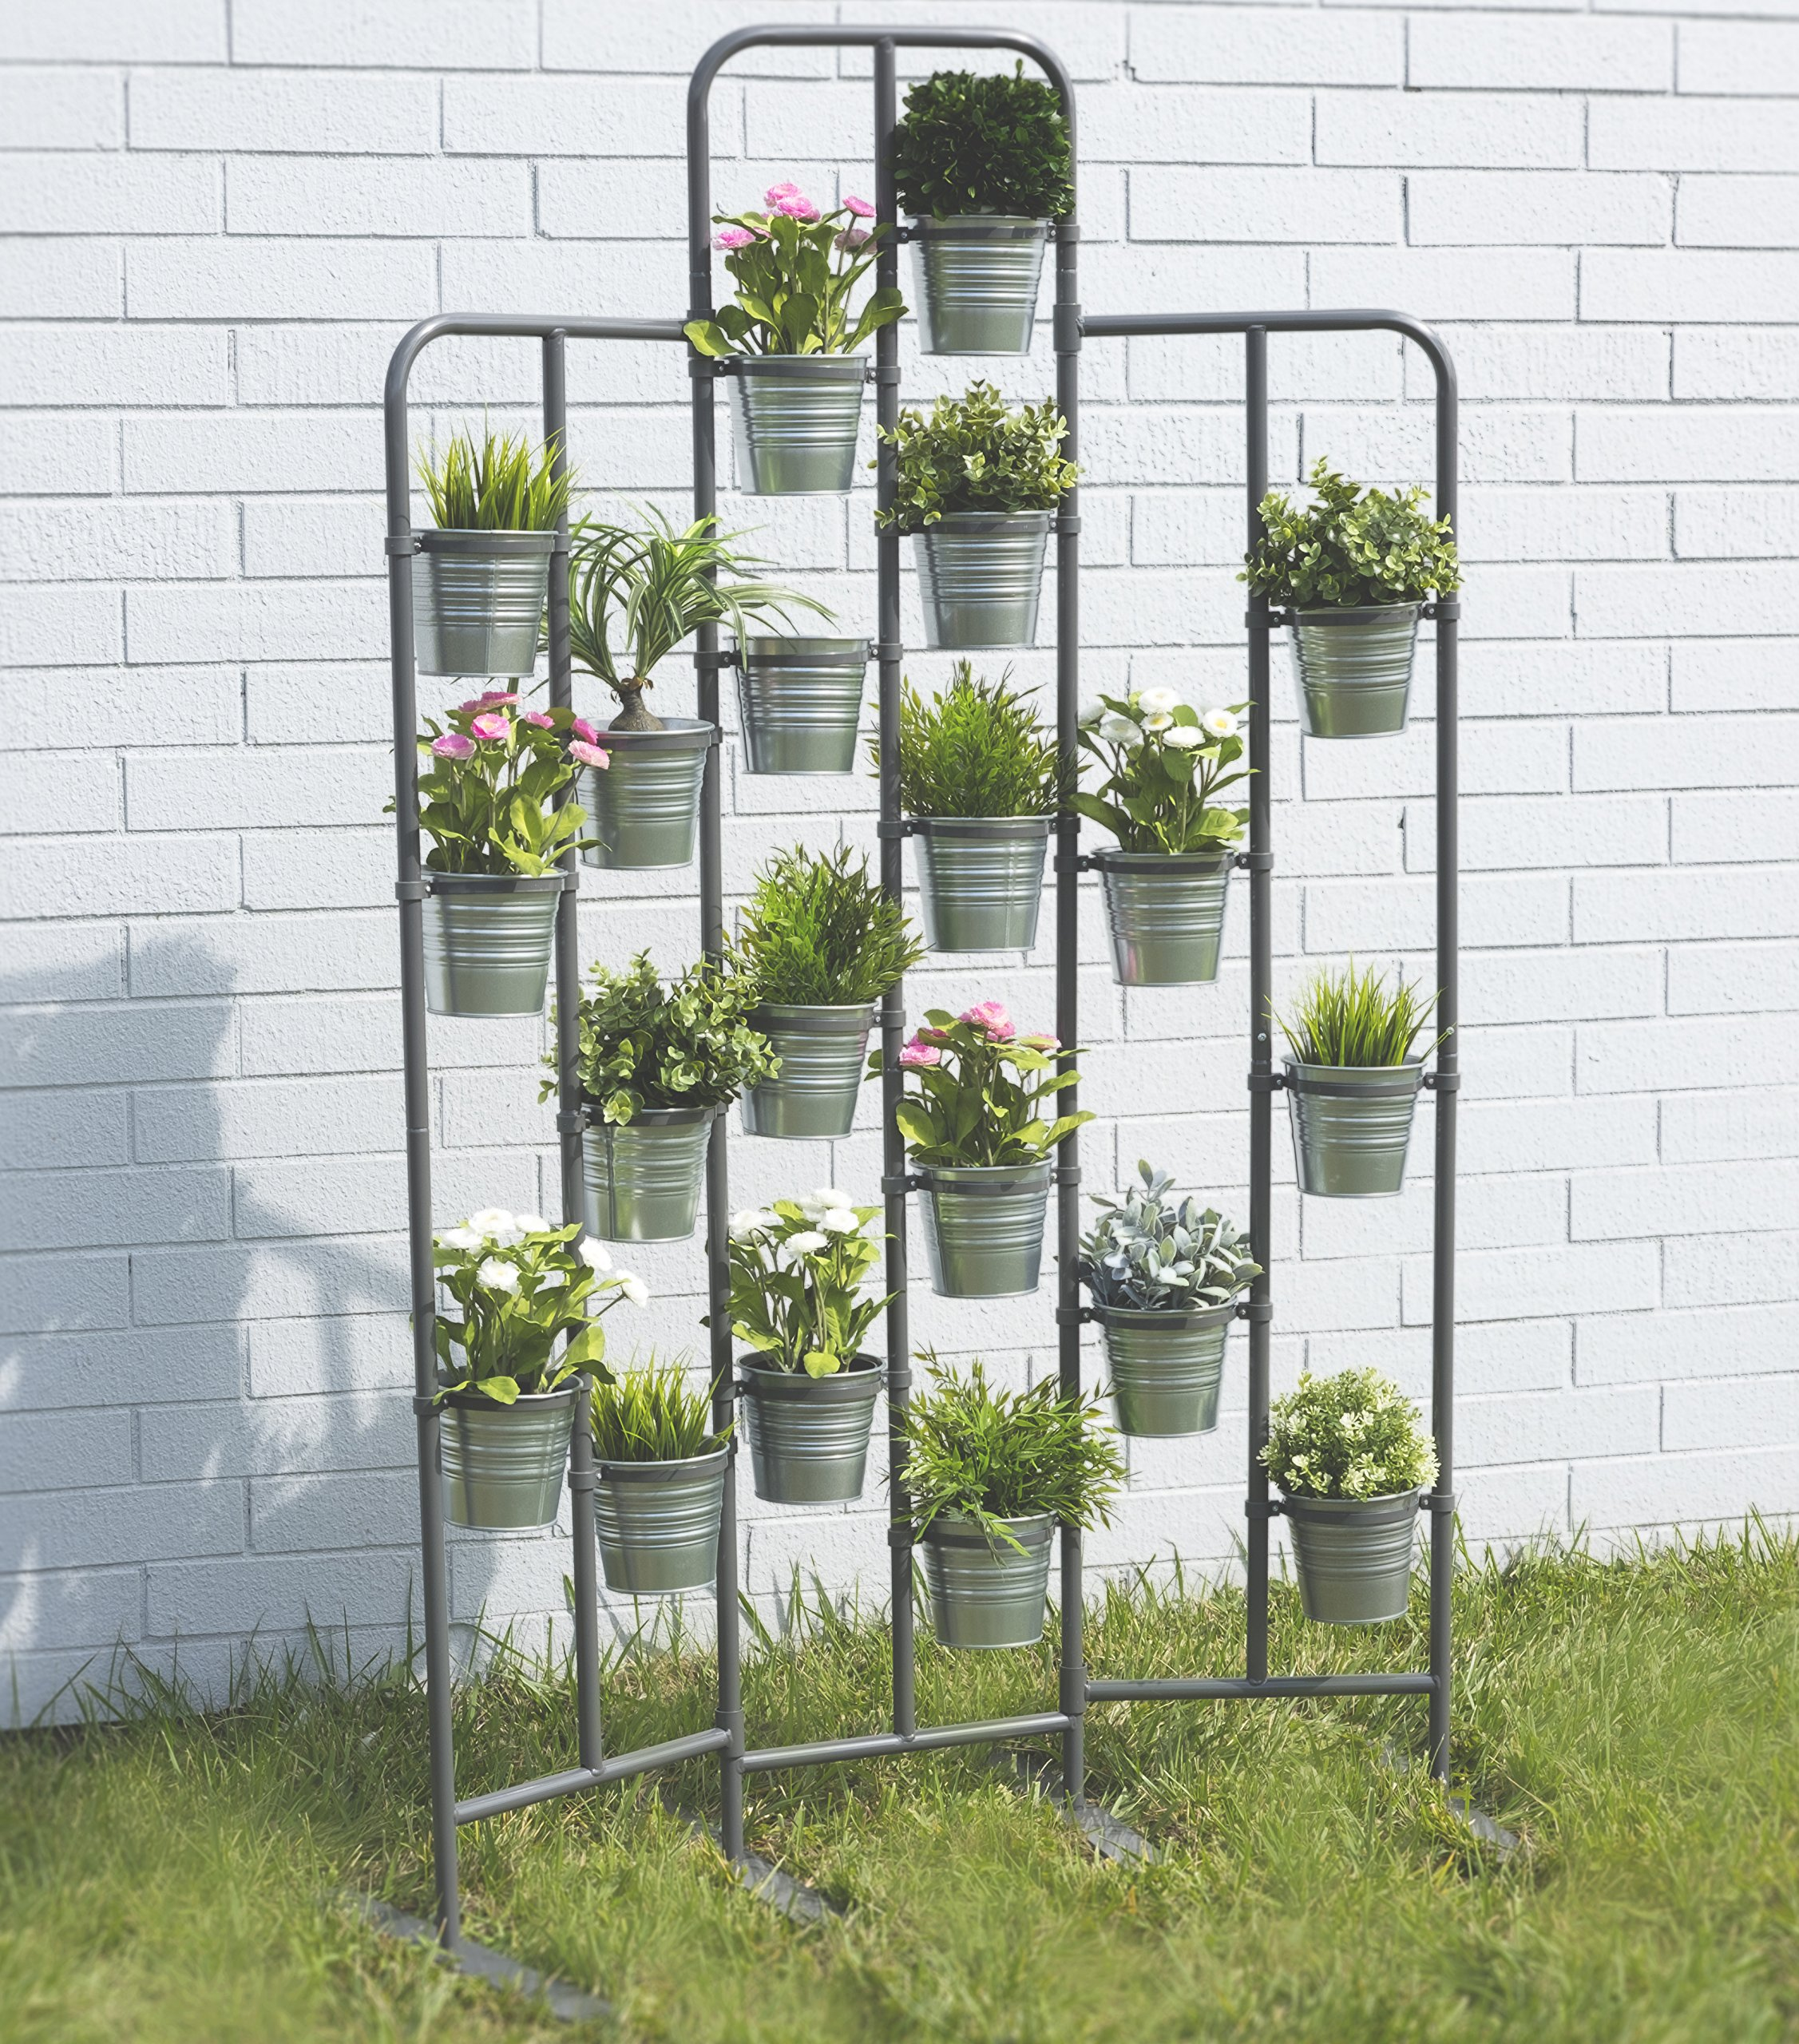 Tall Metal Plant Planter Stand 20 Tiers Display Plants Indoor or Outdoors on a Balcony Patio Garden or Use as a Room Divider or Vertical Garden Inside Your Home Urban Gardening (Dark Gray) by BGT